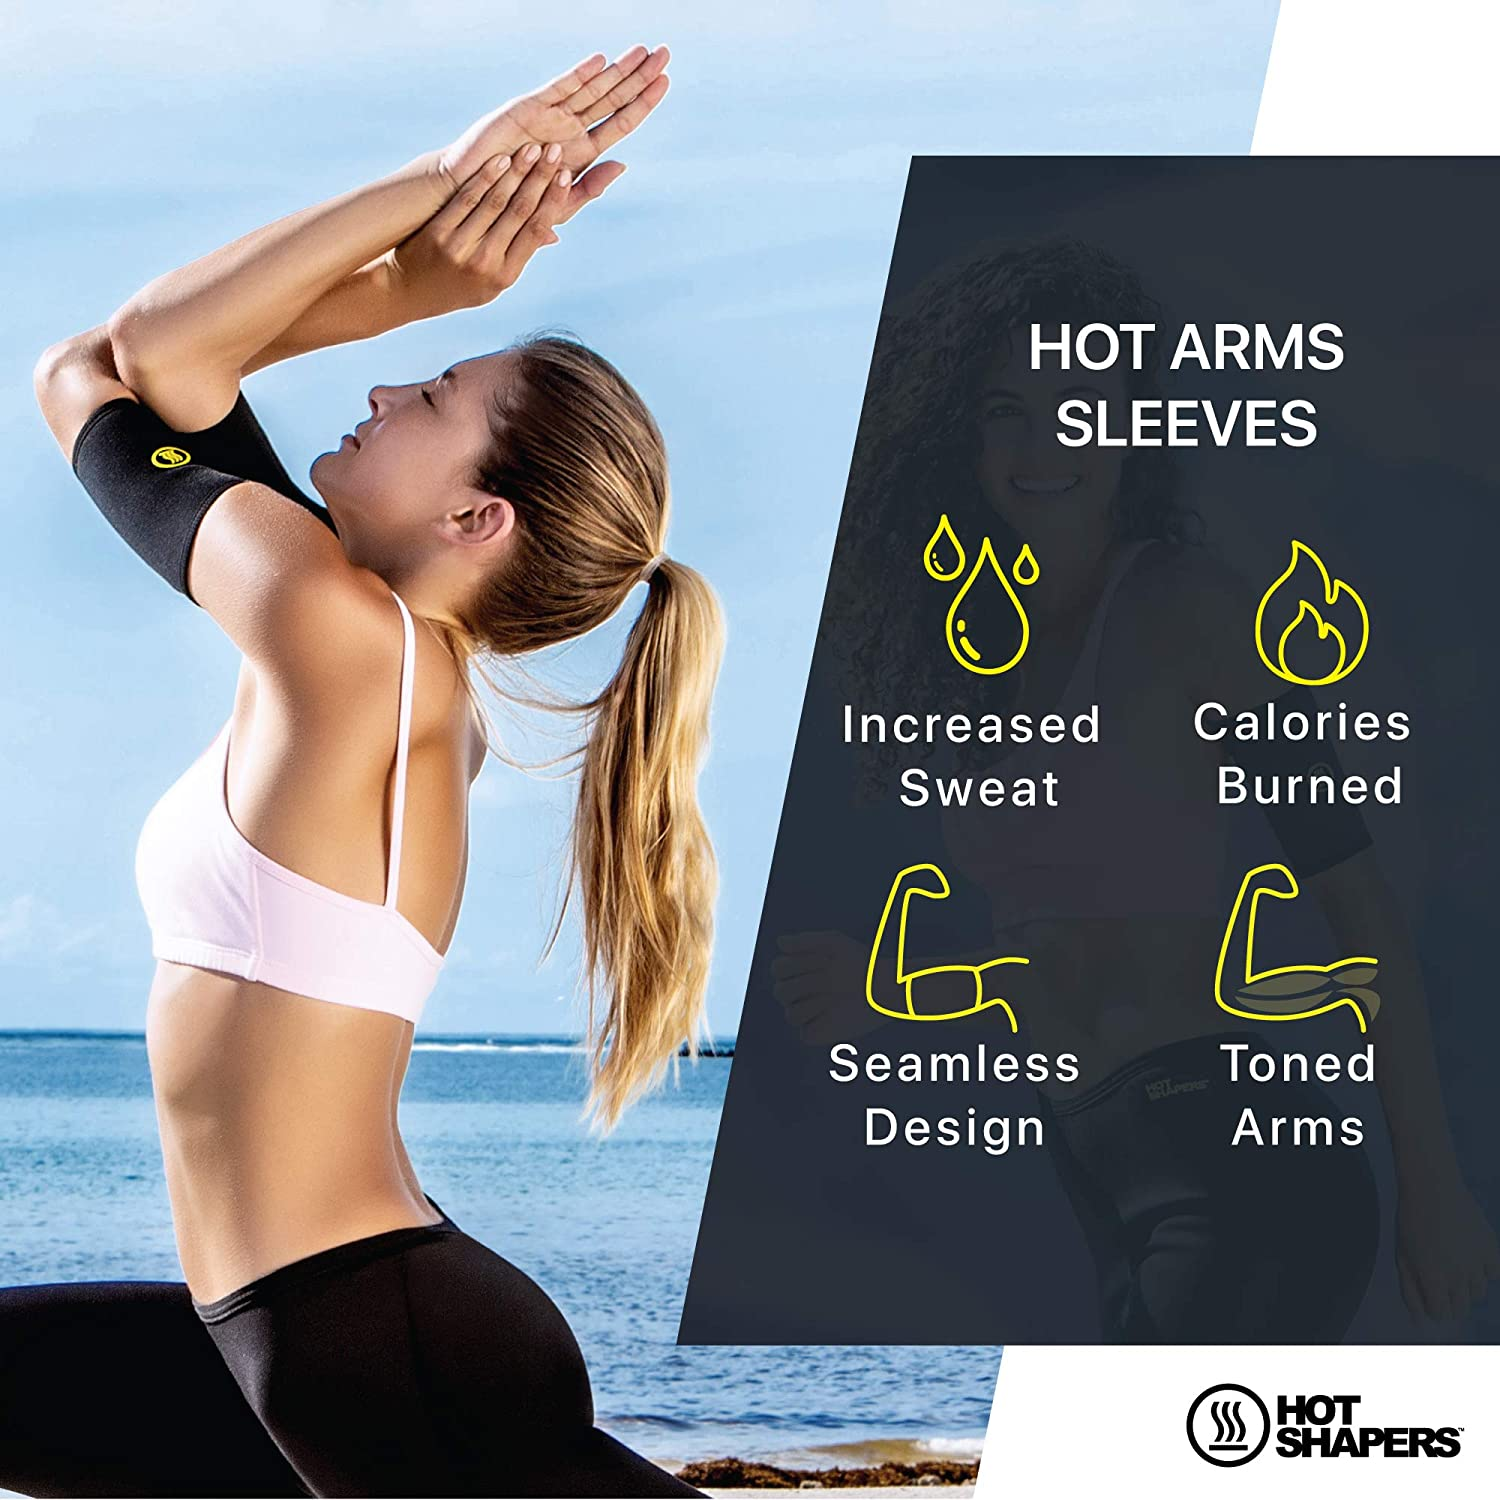 ea184eb4b8c Amazon.com   Hot Shapers Hot Arms Sleeves - Seamless Arm Trimmers with Phone  Pocket for Running   Sports   Outdoors